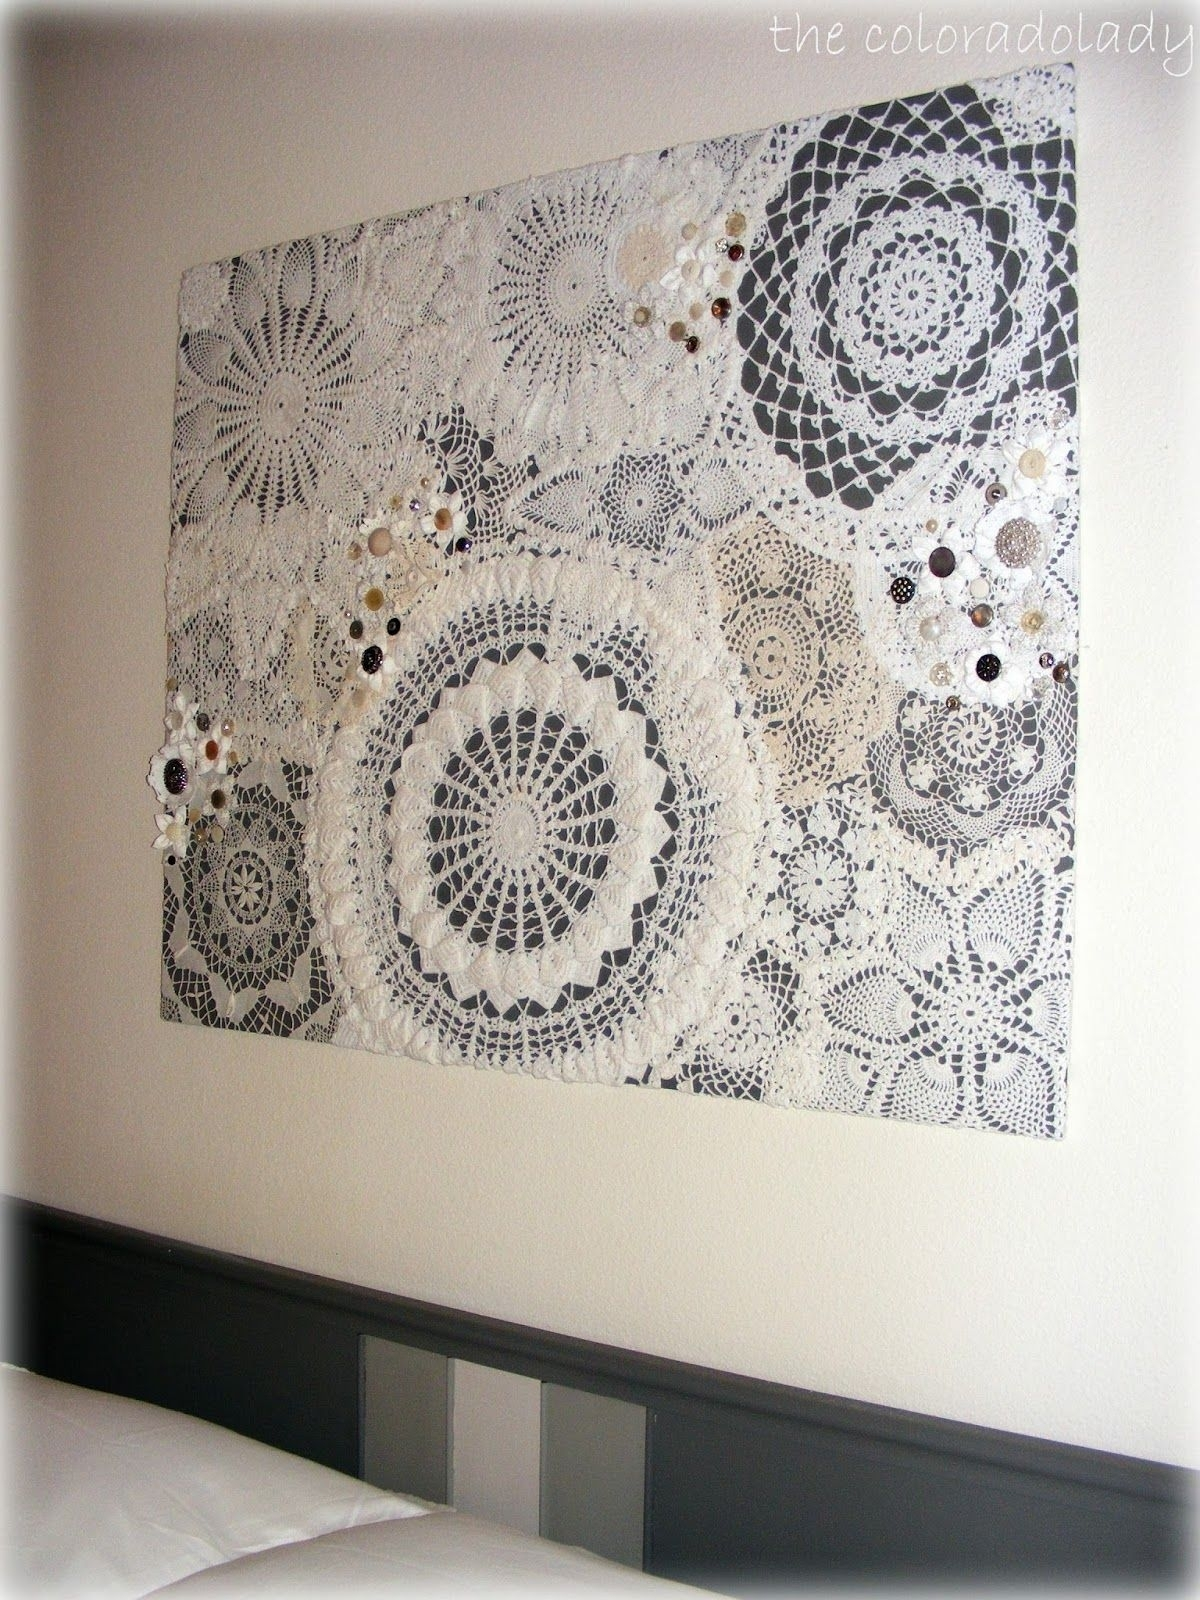 Diy Doily Craft Ideas | My Style | Pinterest | Doilies Crafts, Walls with Crochet Wall Art (Image 10 of 20)